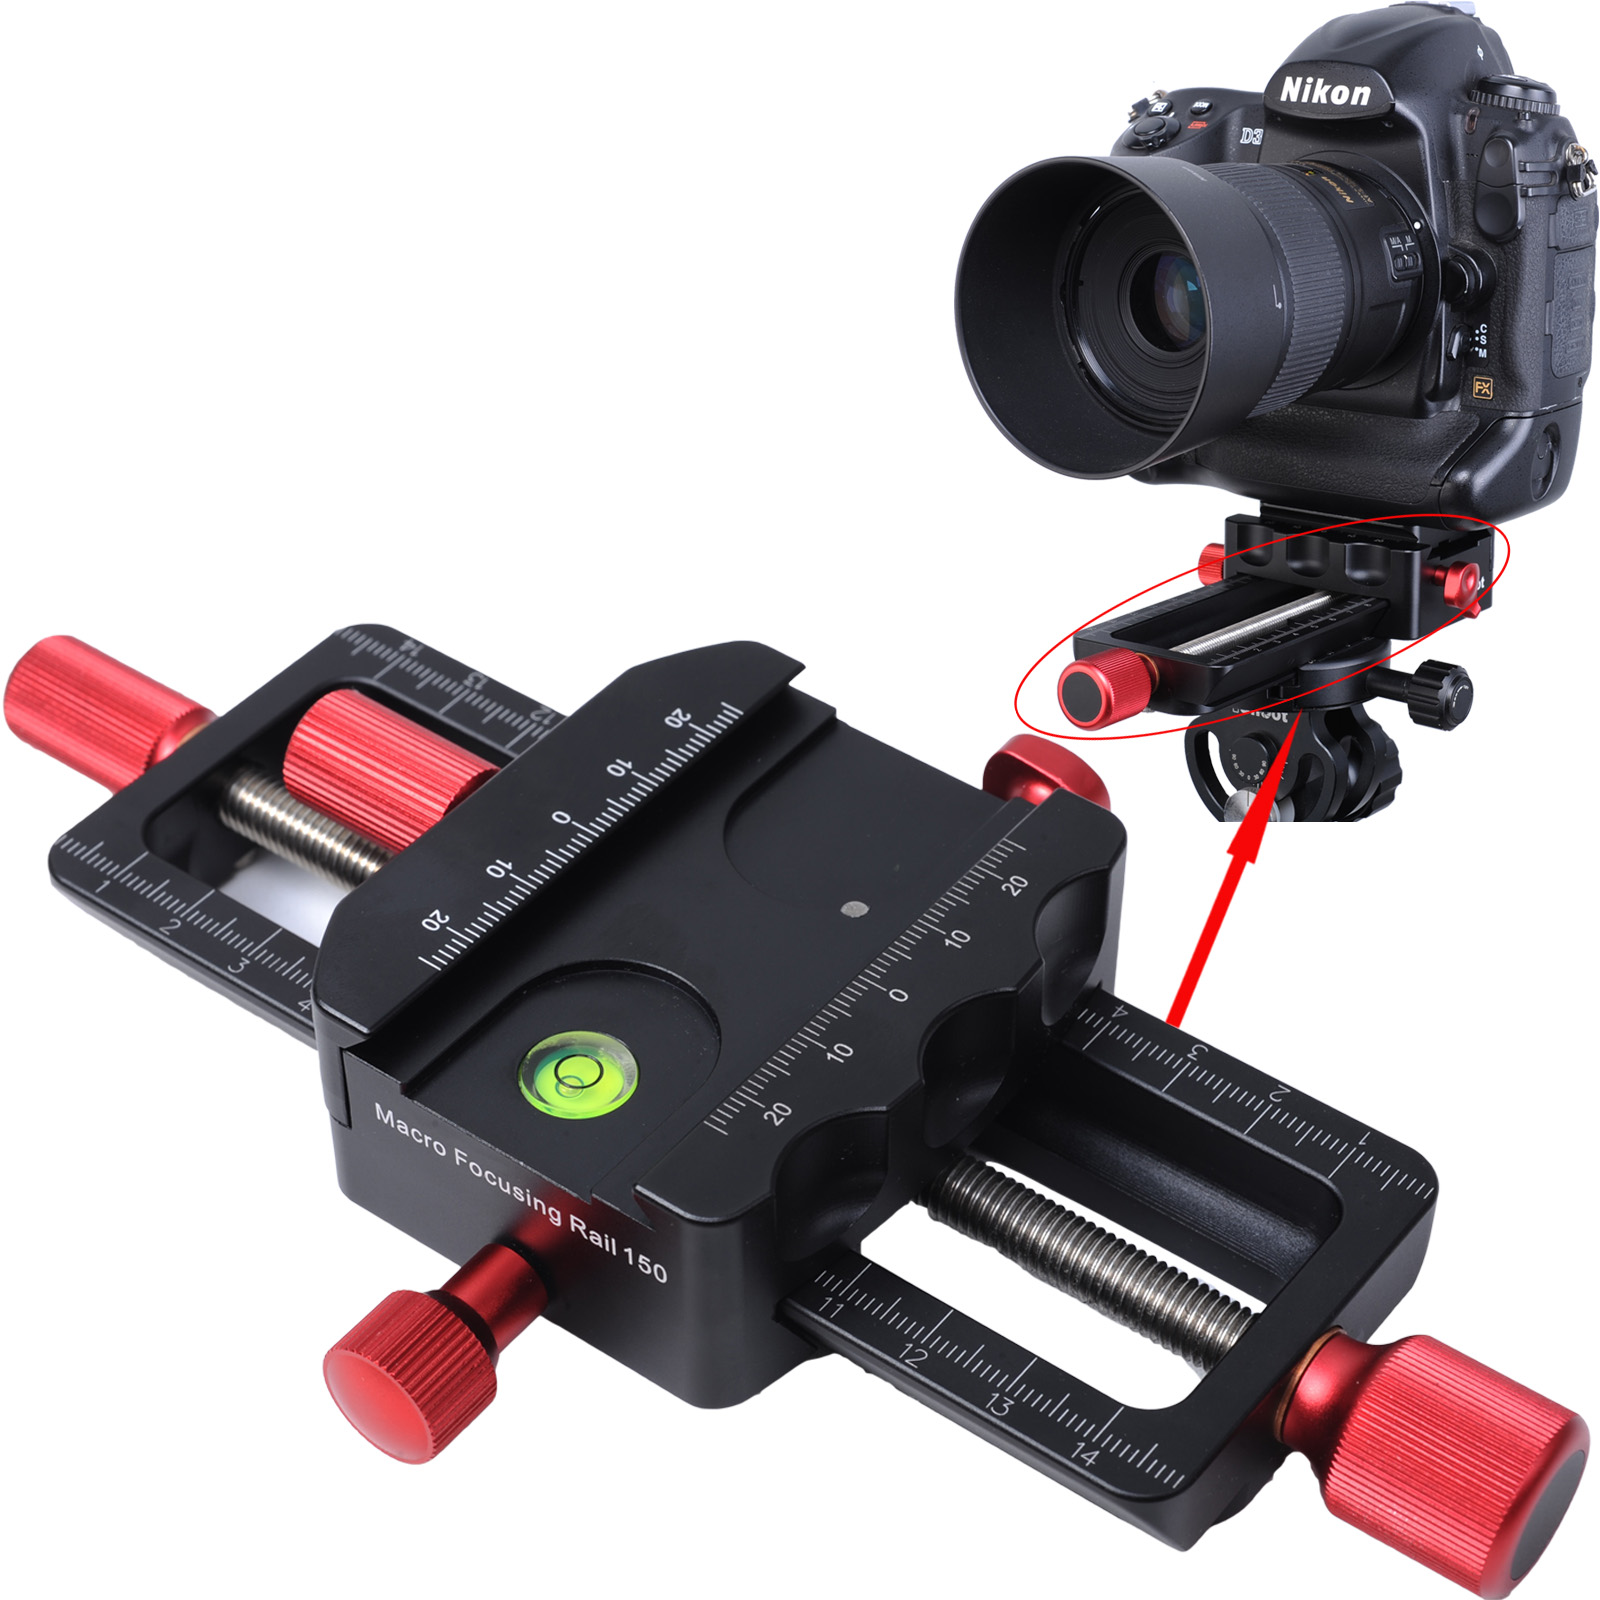 150mm Macro Focusing Rail Slider Close-up Shooting Head With Arca-Swiss Fit Clamp Quick Release Plate for Tripod Ballhead fotomate lp 02 200mm movable 2 way macro focusing rail slider black